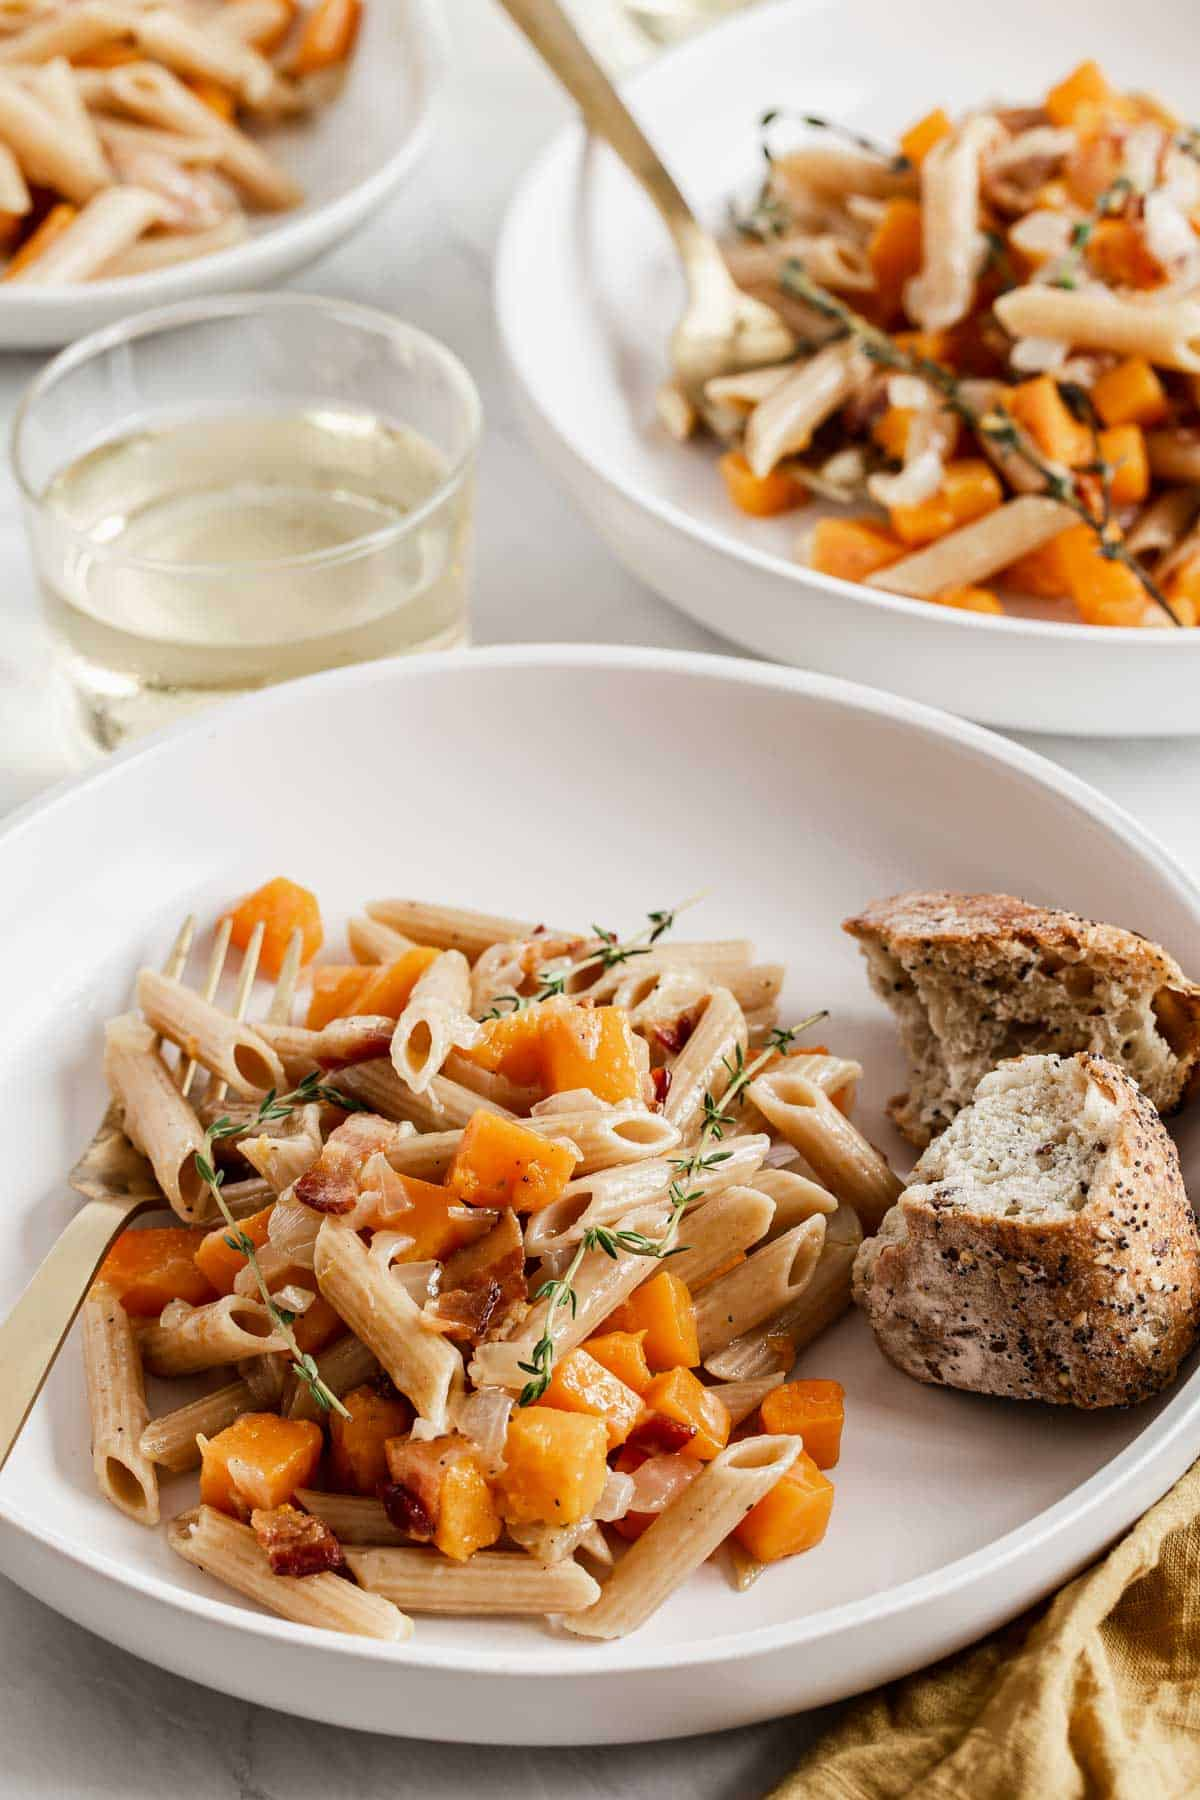 Two bowl of pasta with butternut squash cubes and bread on the side.